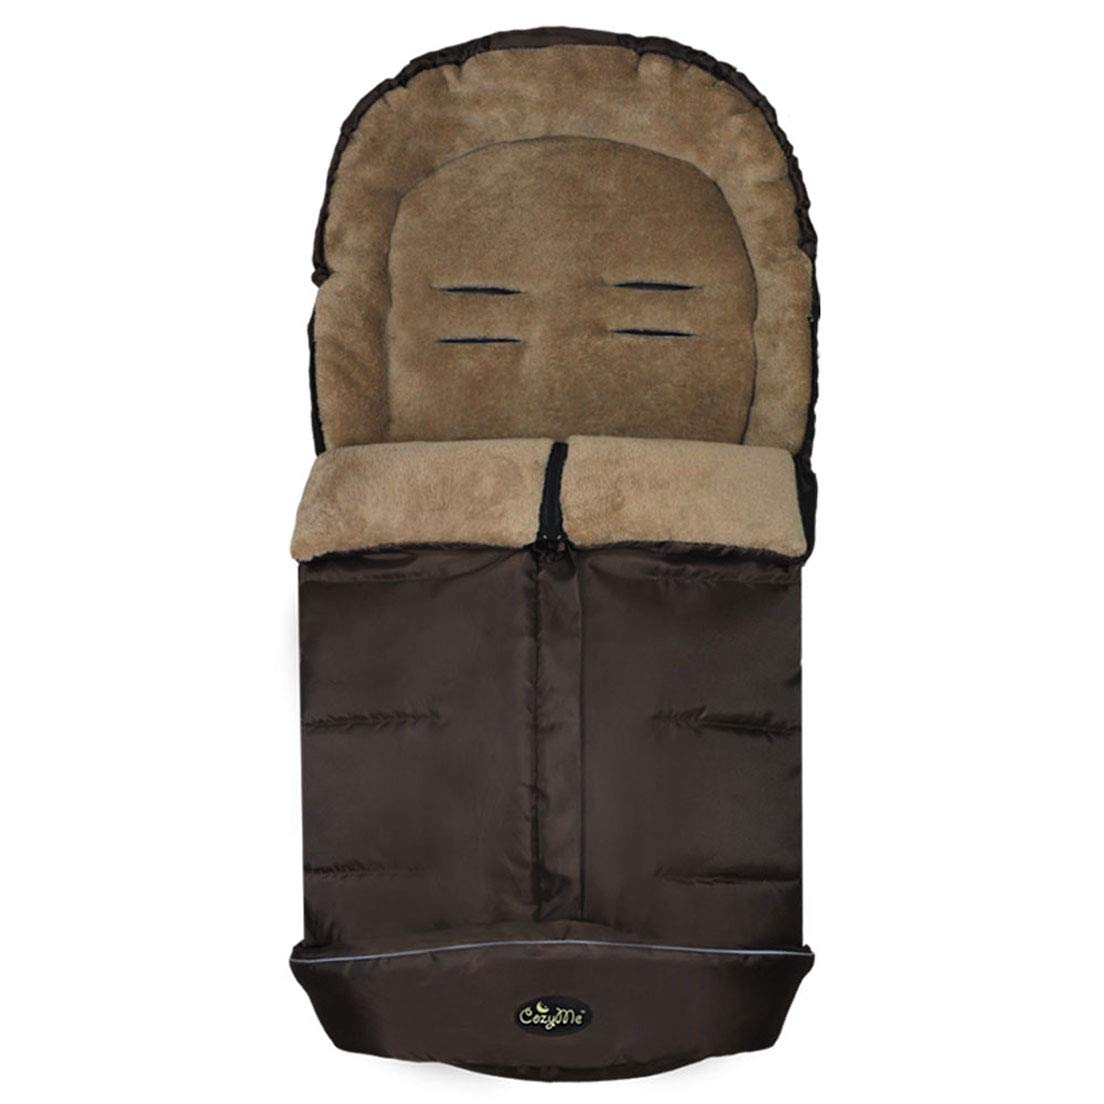 Height Adjustable Cozy Baby Footmuff, Universal Stroller Sleeping Bag, Fits Most of Strollers Pushchair and Joggers, Extendable, Adaptable,Convertibale,Coffee